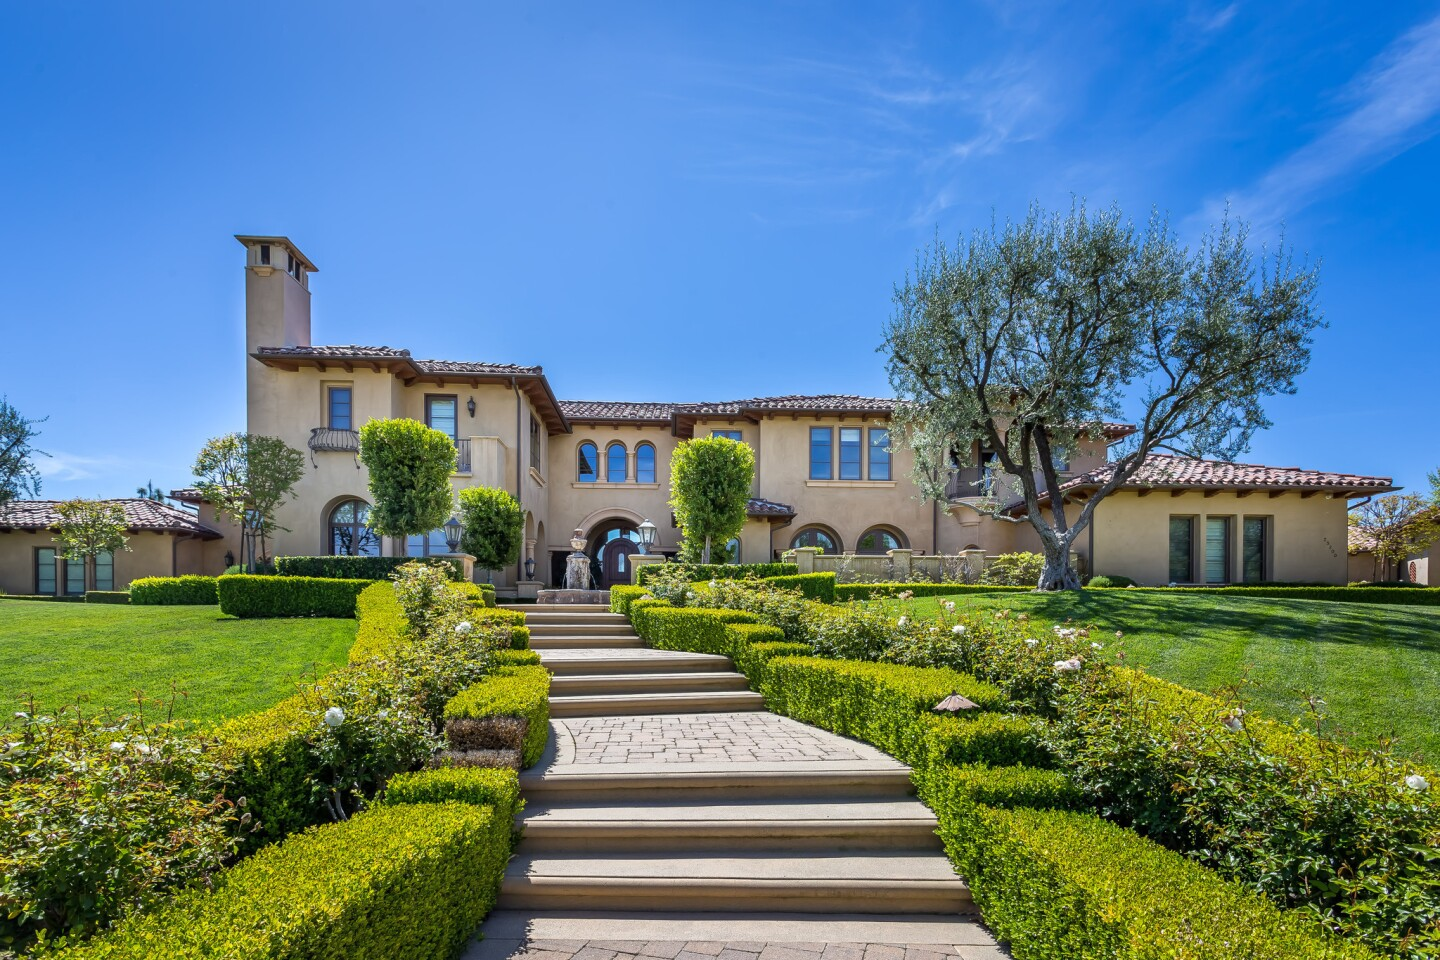 Chris Paul's mansion in Calabasas | Hot Property